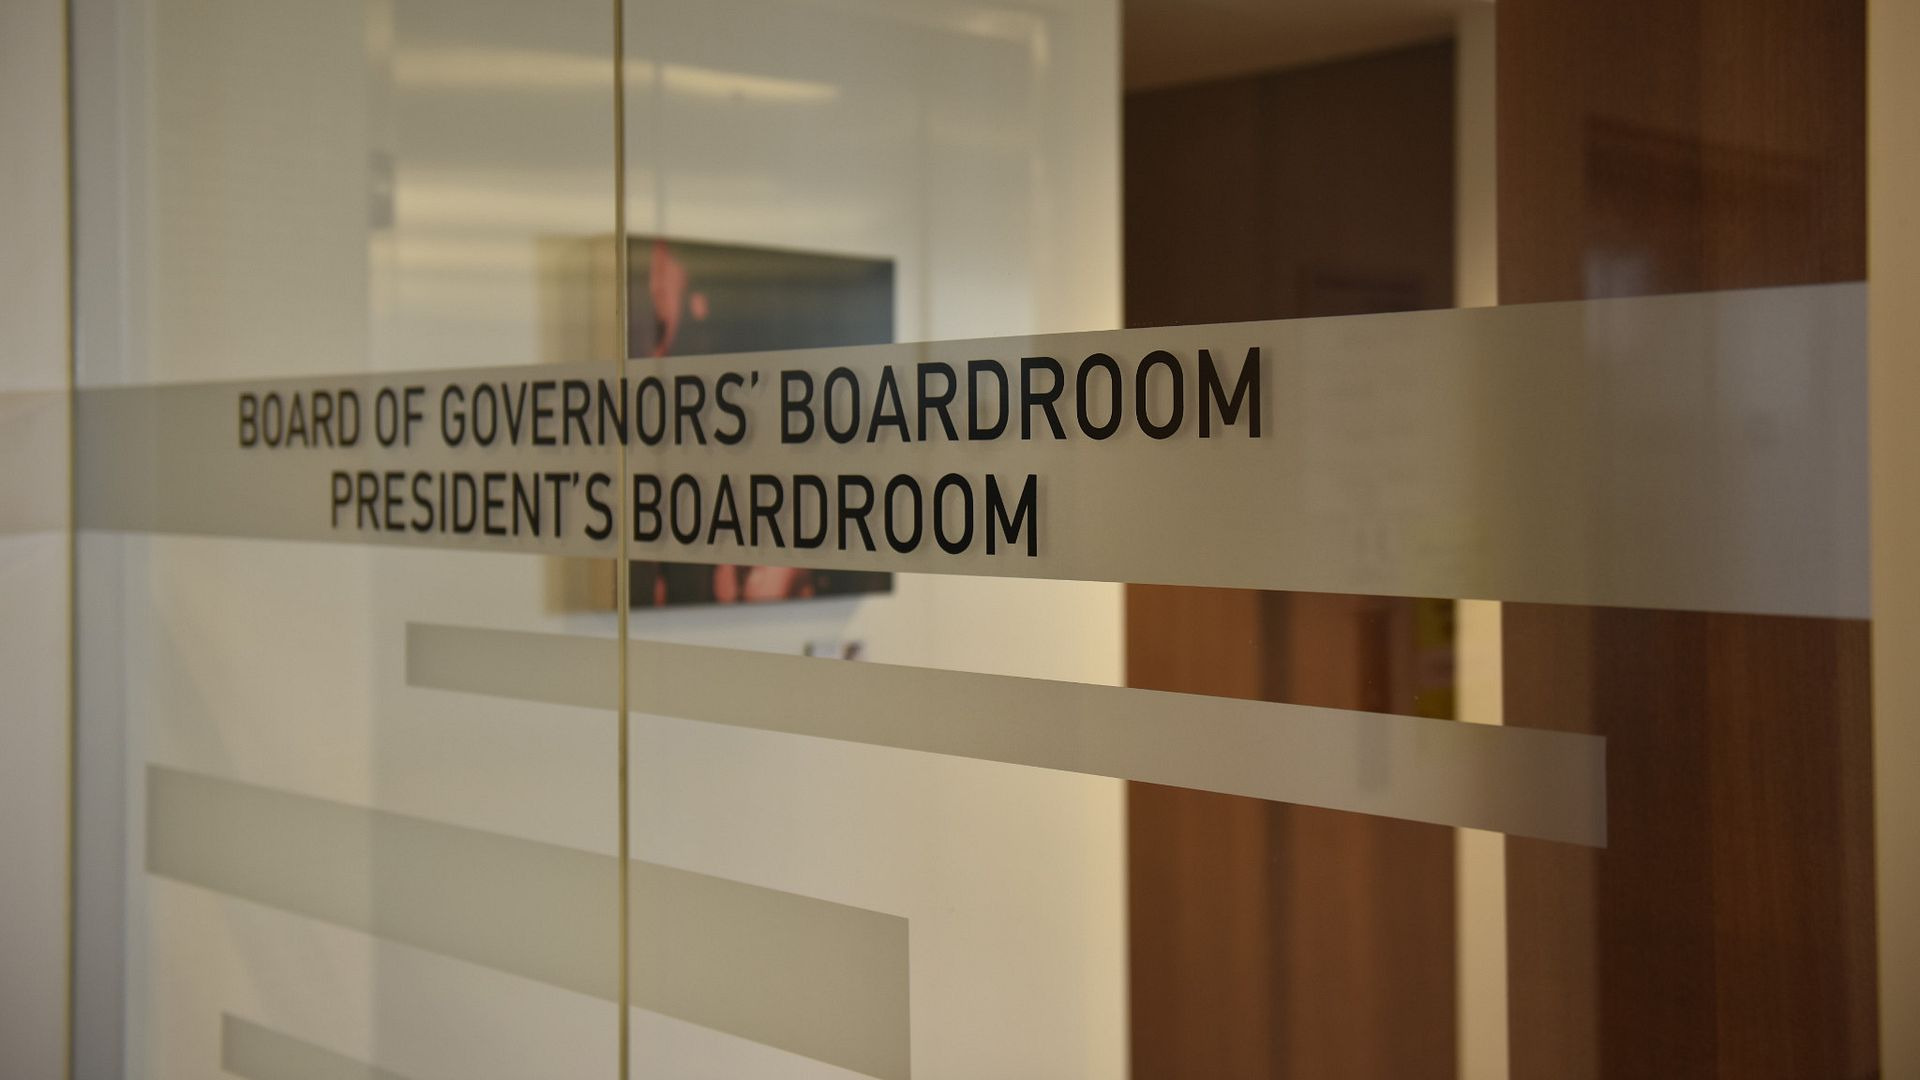 Board of Governors' Boardroom / President's Boardroom